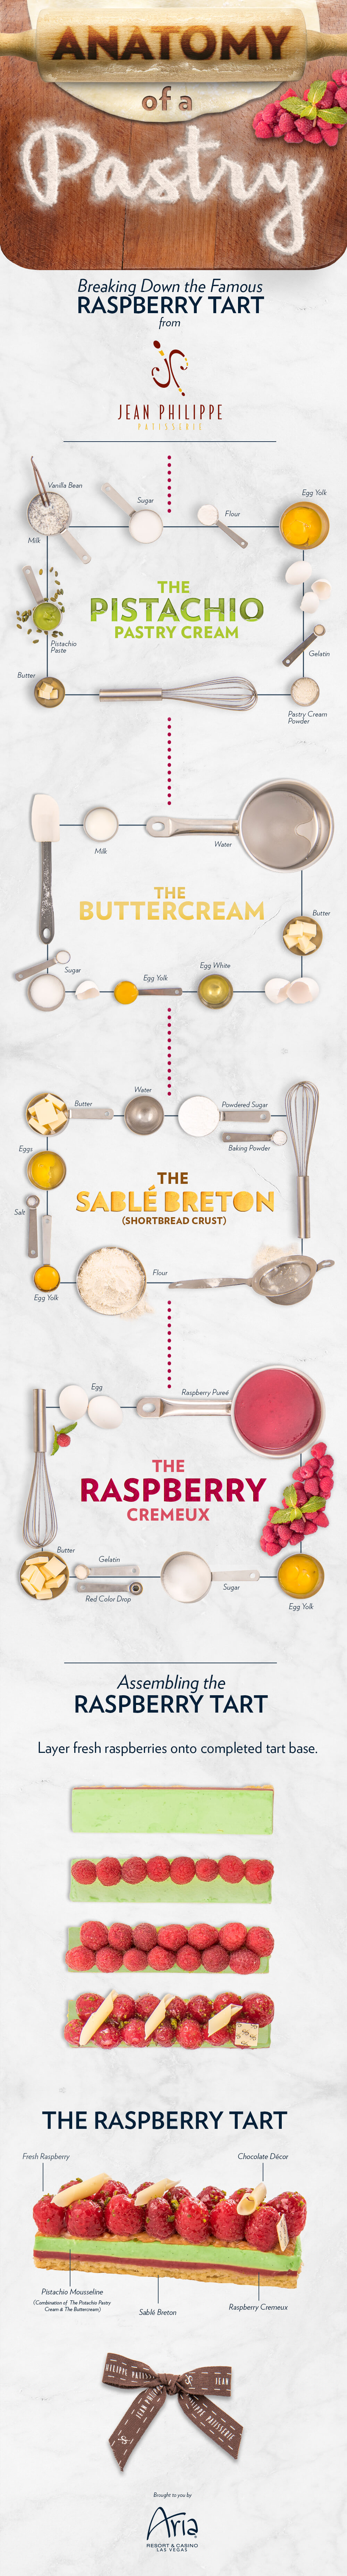 Anatomy of a Pastry Infographic